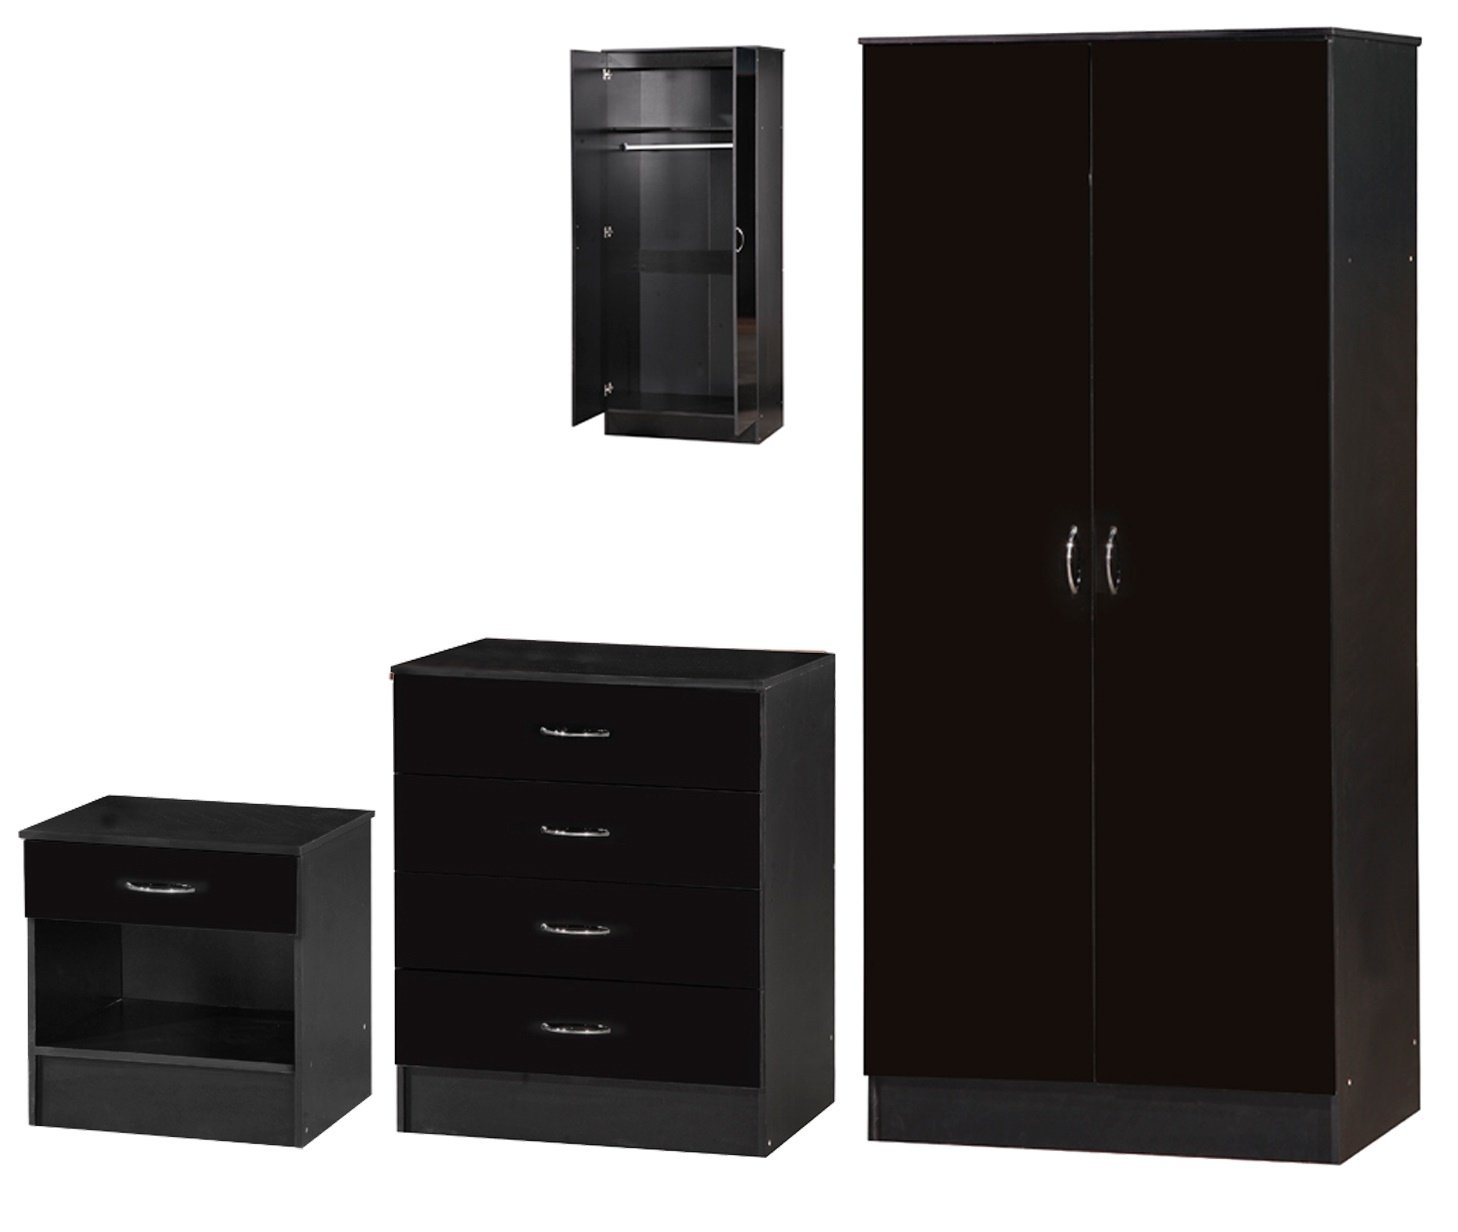 Alpha Black Two Tone 3-Piece Set Standard, Wood, 46.5x76x180.5 cm AL-BLK04006SET